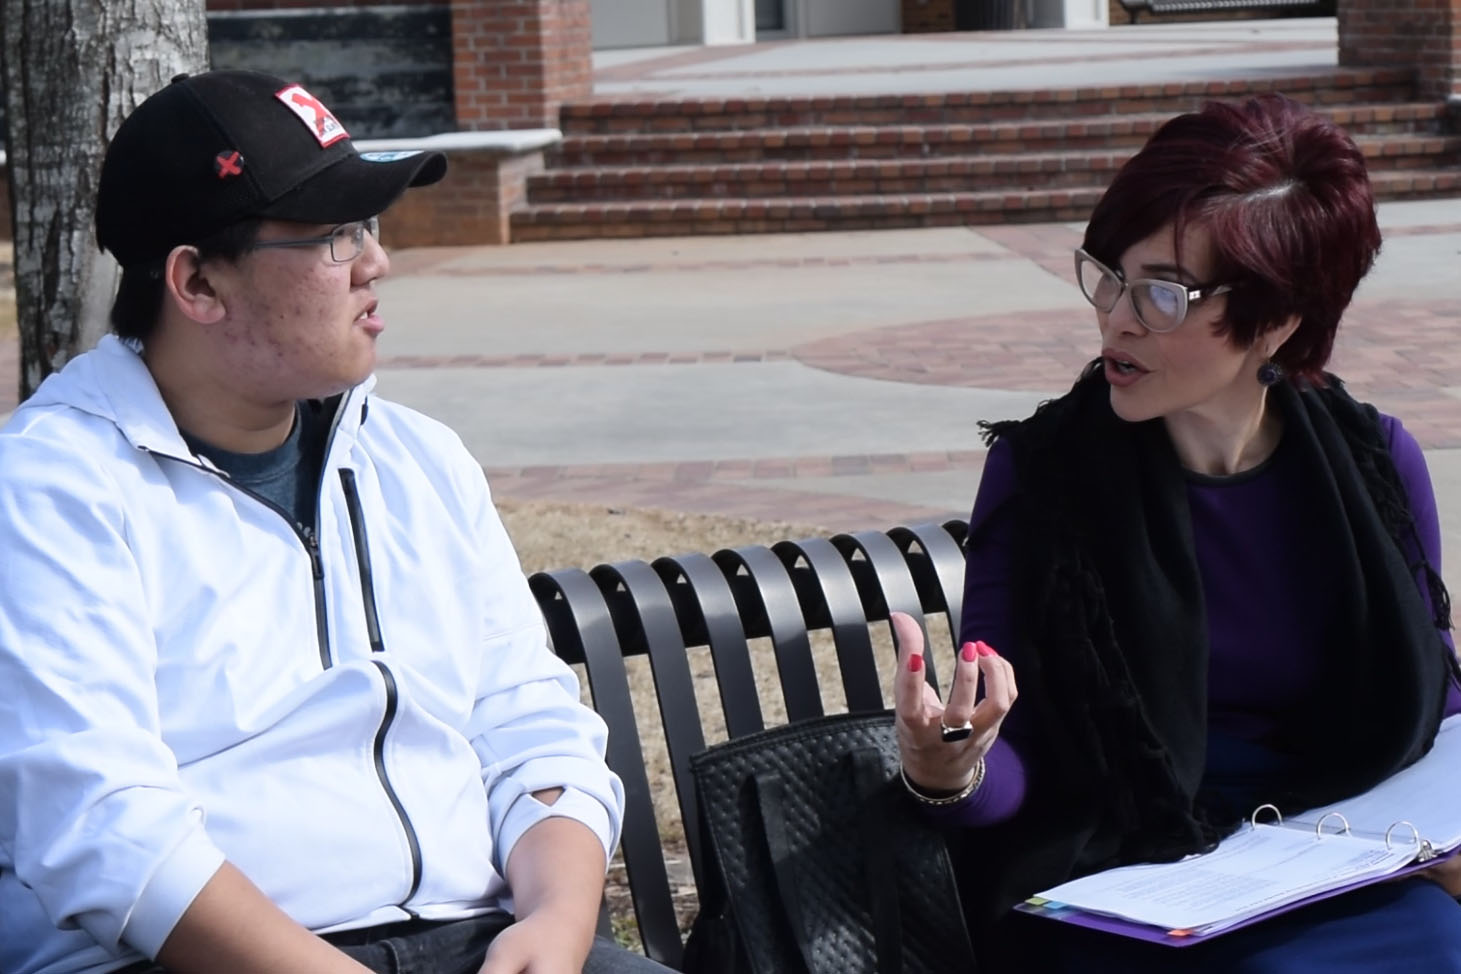 Anmarie Martin, right, talks with a fellow student. Martin returned to school to pursue a bachelor's degree thanks to a UNG scholarship.